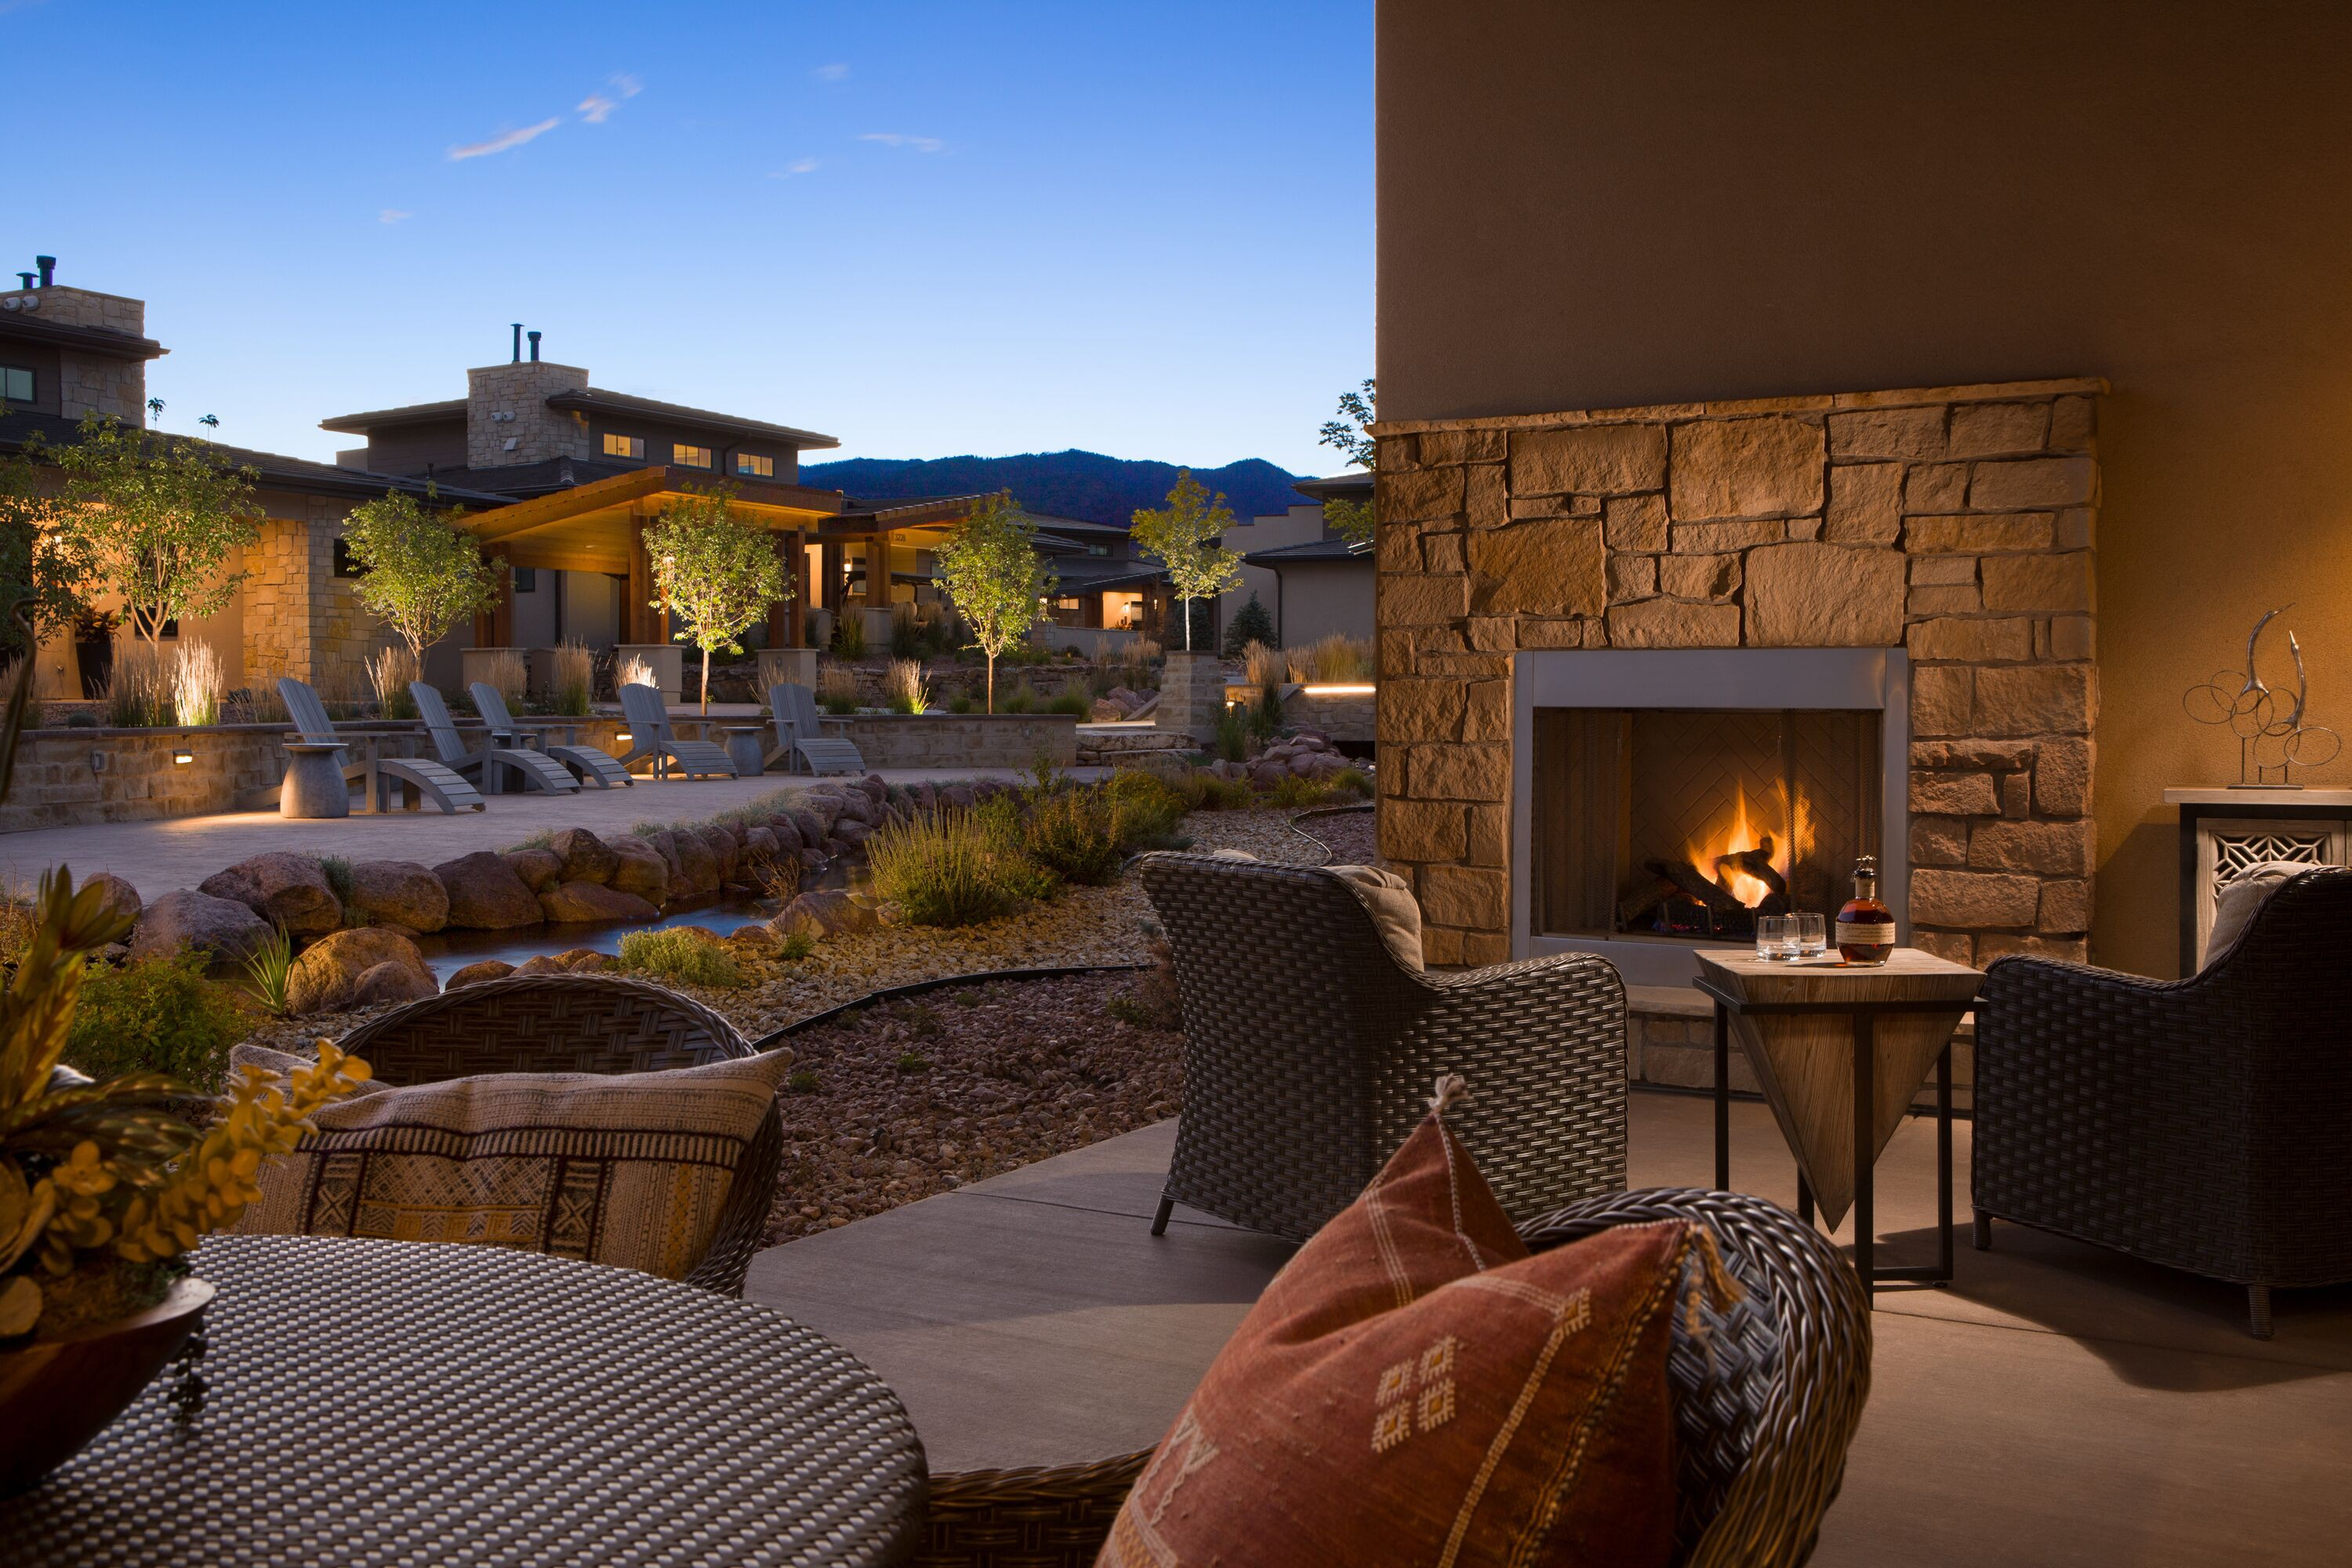 Courtesy of Garden of the Gods Resort and Club / Expedia